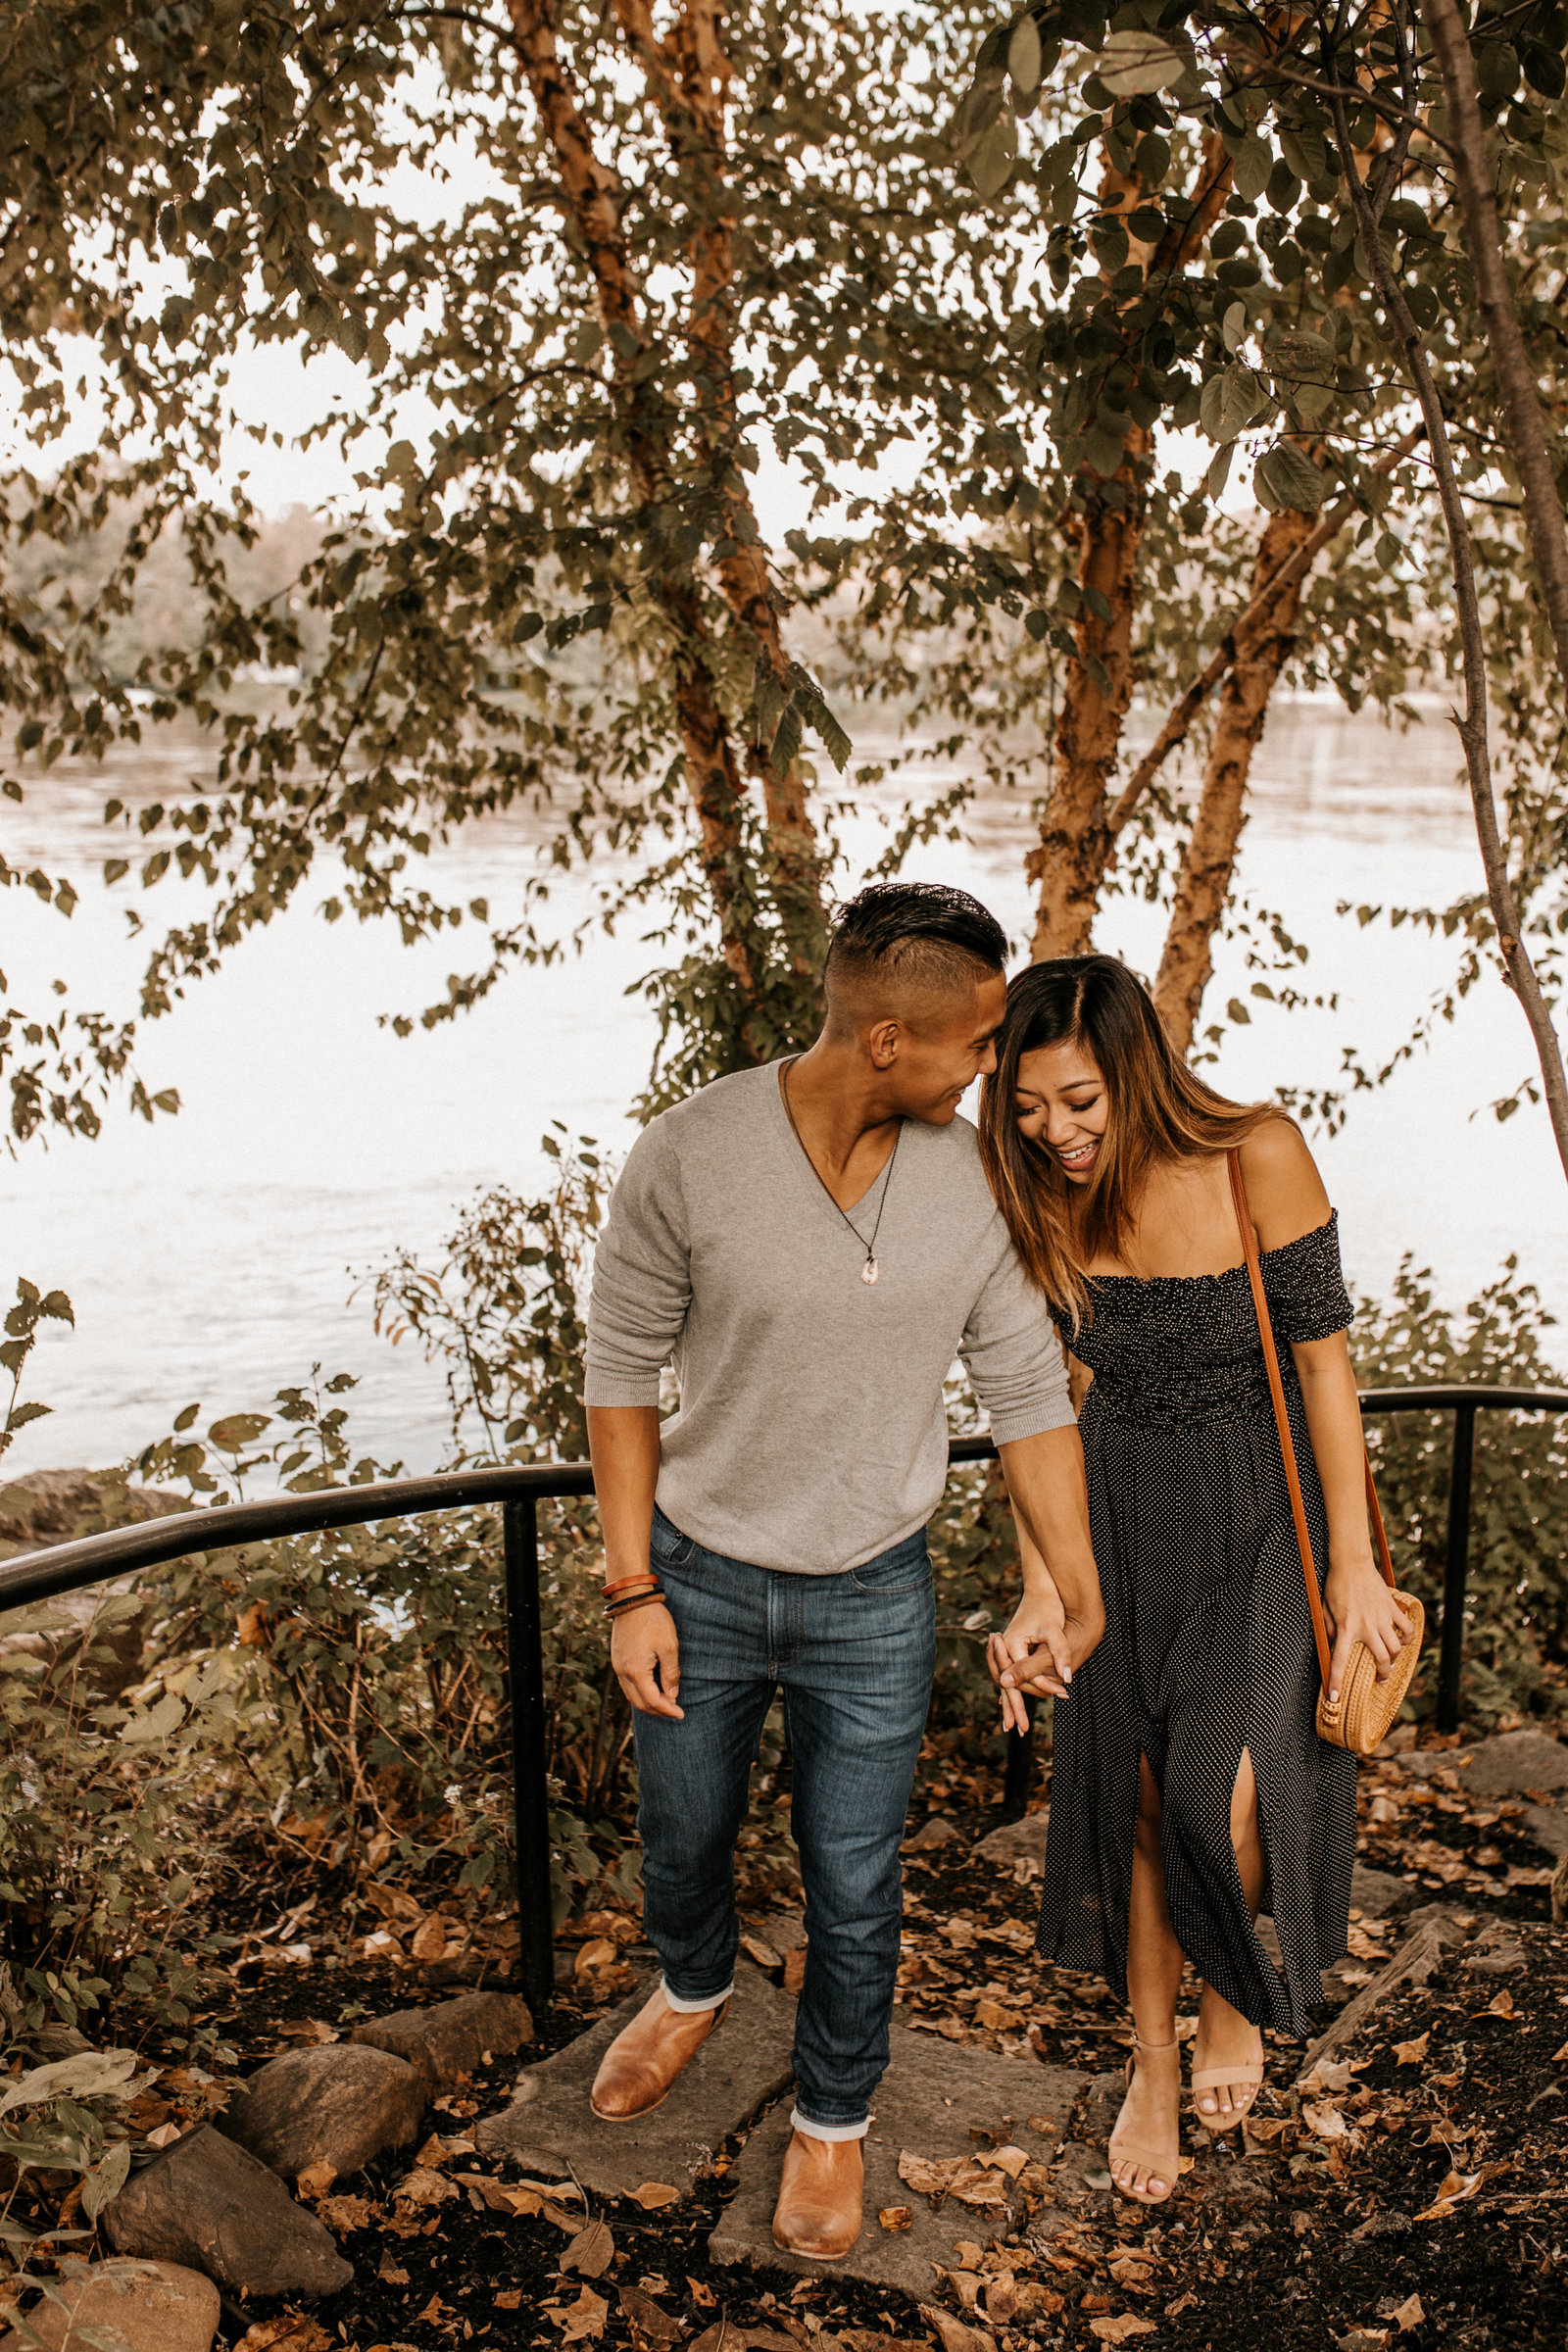 Tammy_Noel_Couples_Session_Sneak_Peeks_9.29.18-37